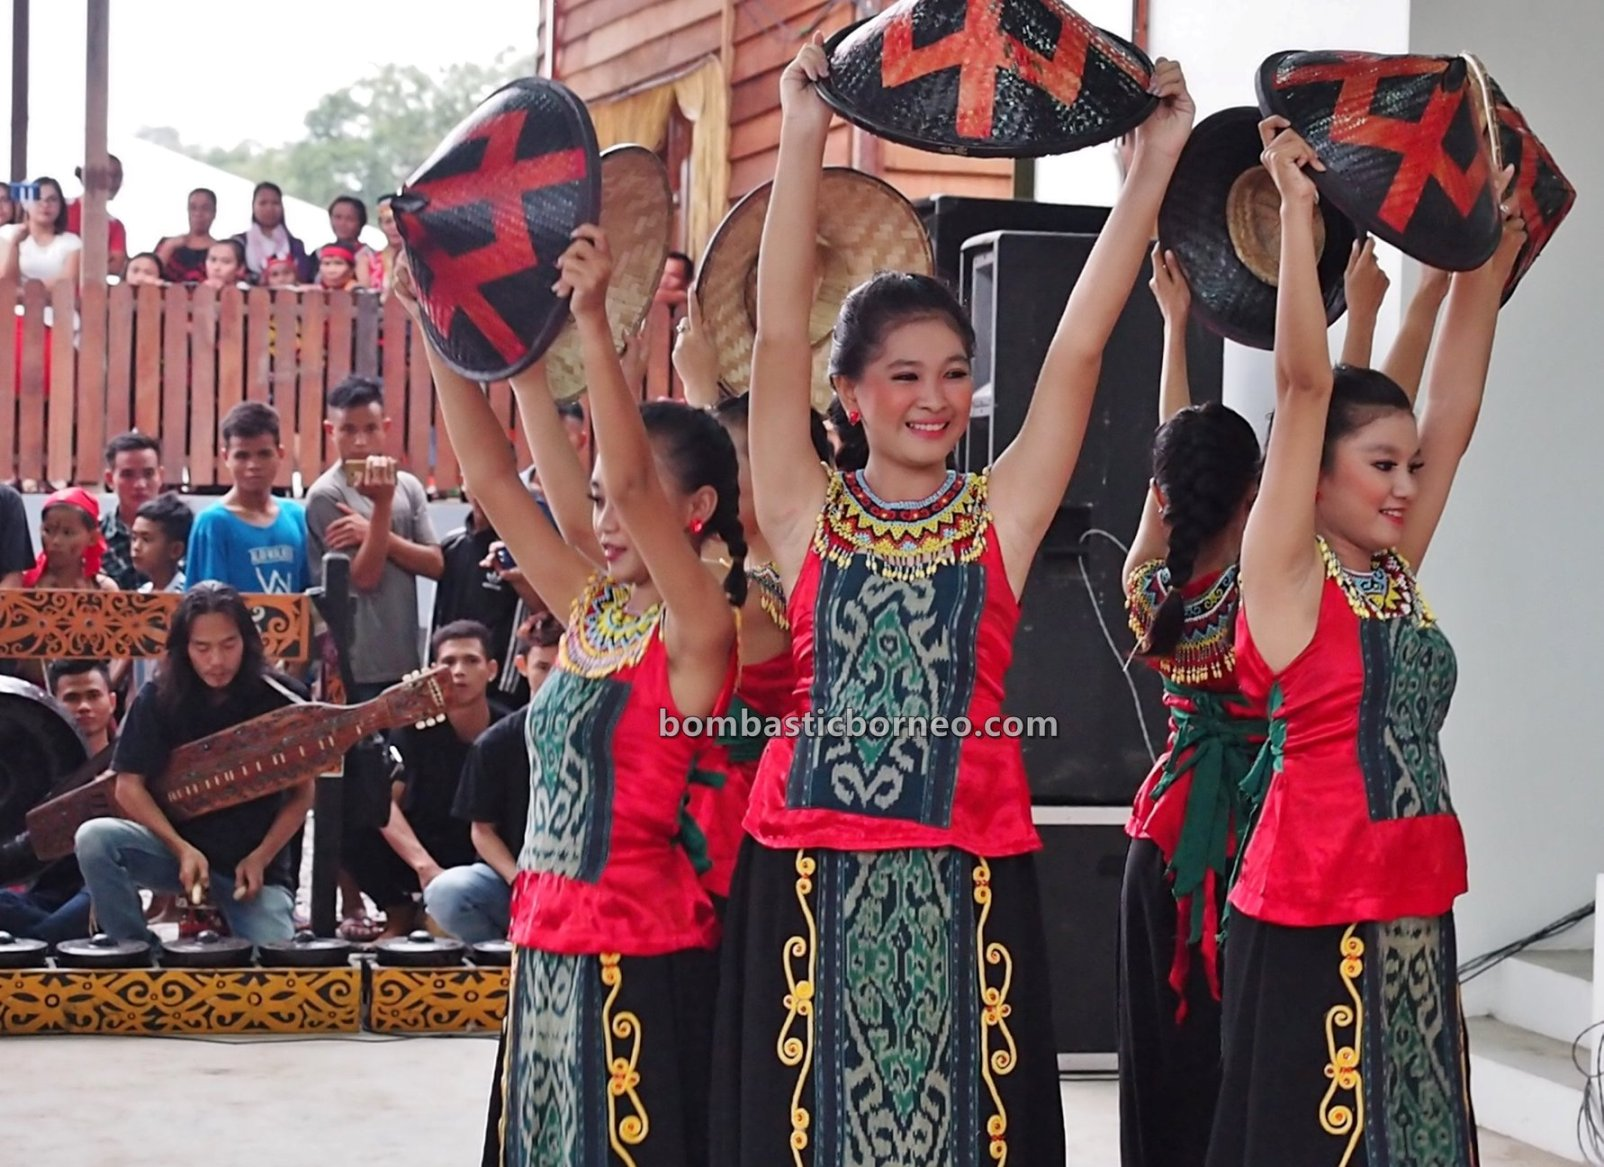 Dayak Bidayuh, paddy harvest festival, indigenous, traditional, destination, budaya, event, tribal, travel guide, trans borneo, 婆罗洲丰收节日, 砂拉越原住民部落, Bengkayang, West Kalimantan, Indonesia